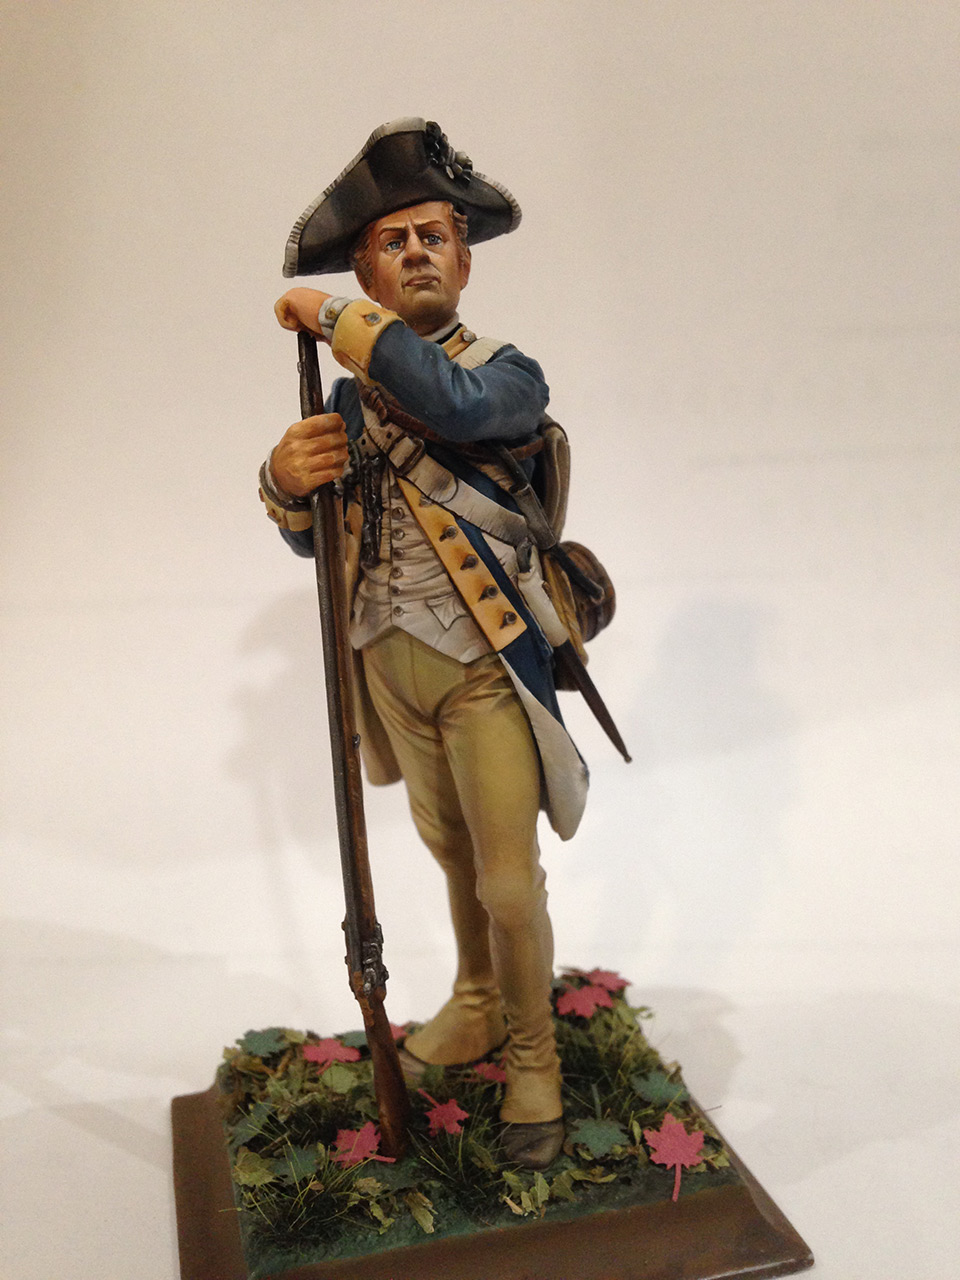 Figures: Private, 1st New York regt. of Continental Army, photo #7